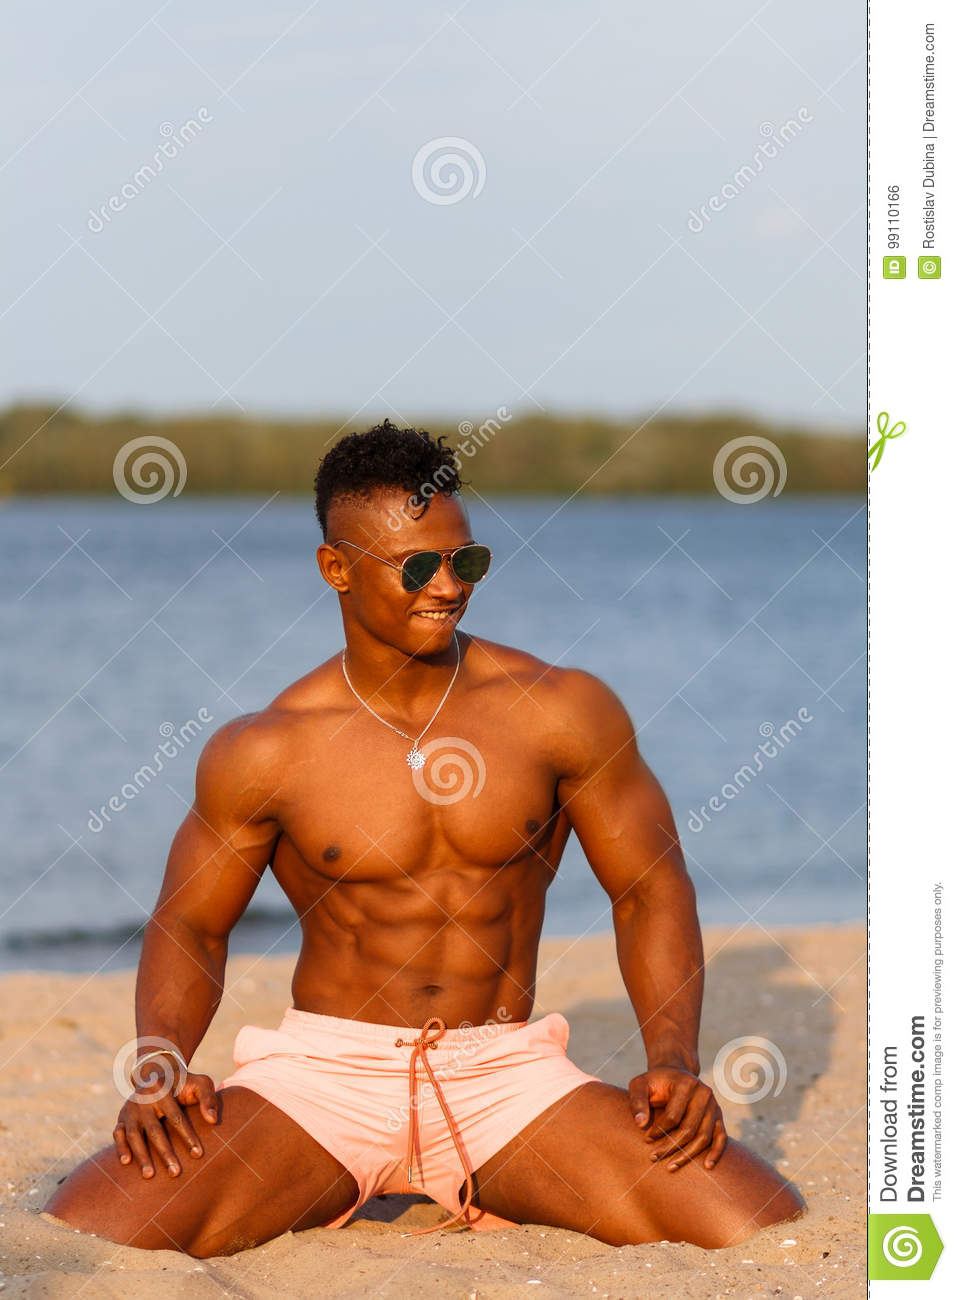 Muscular Young Athletic Man On The Beach With A Naked